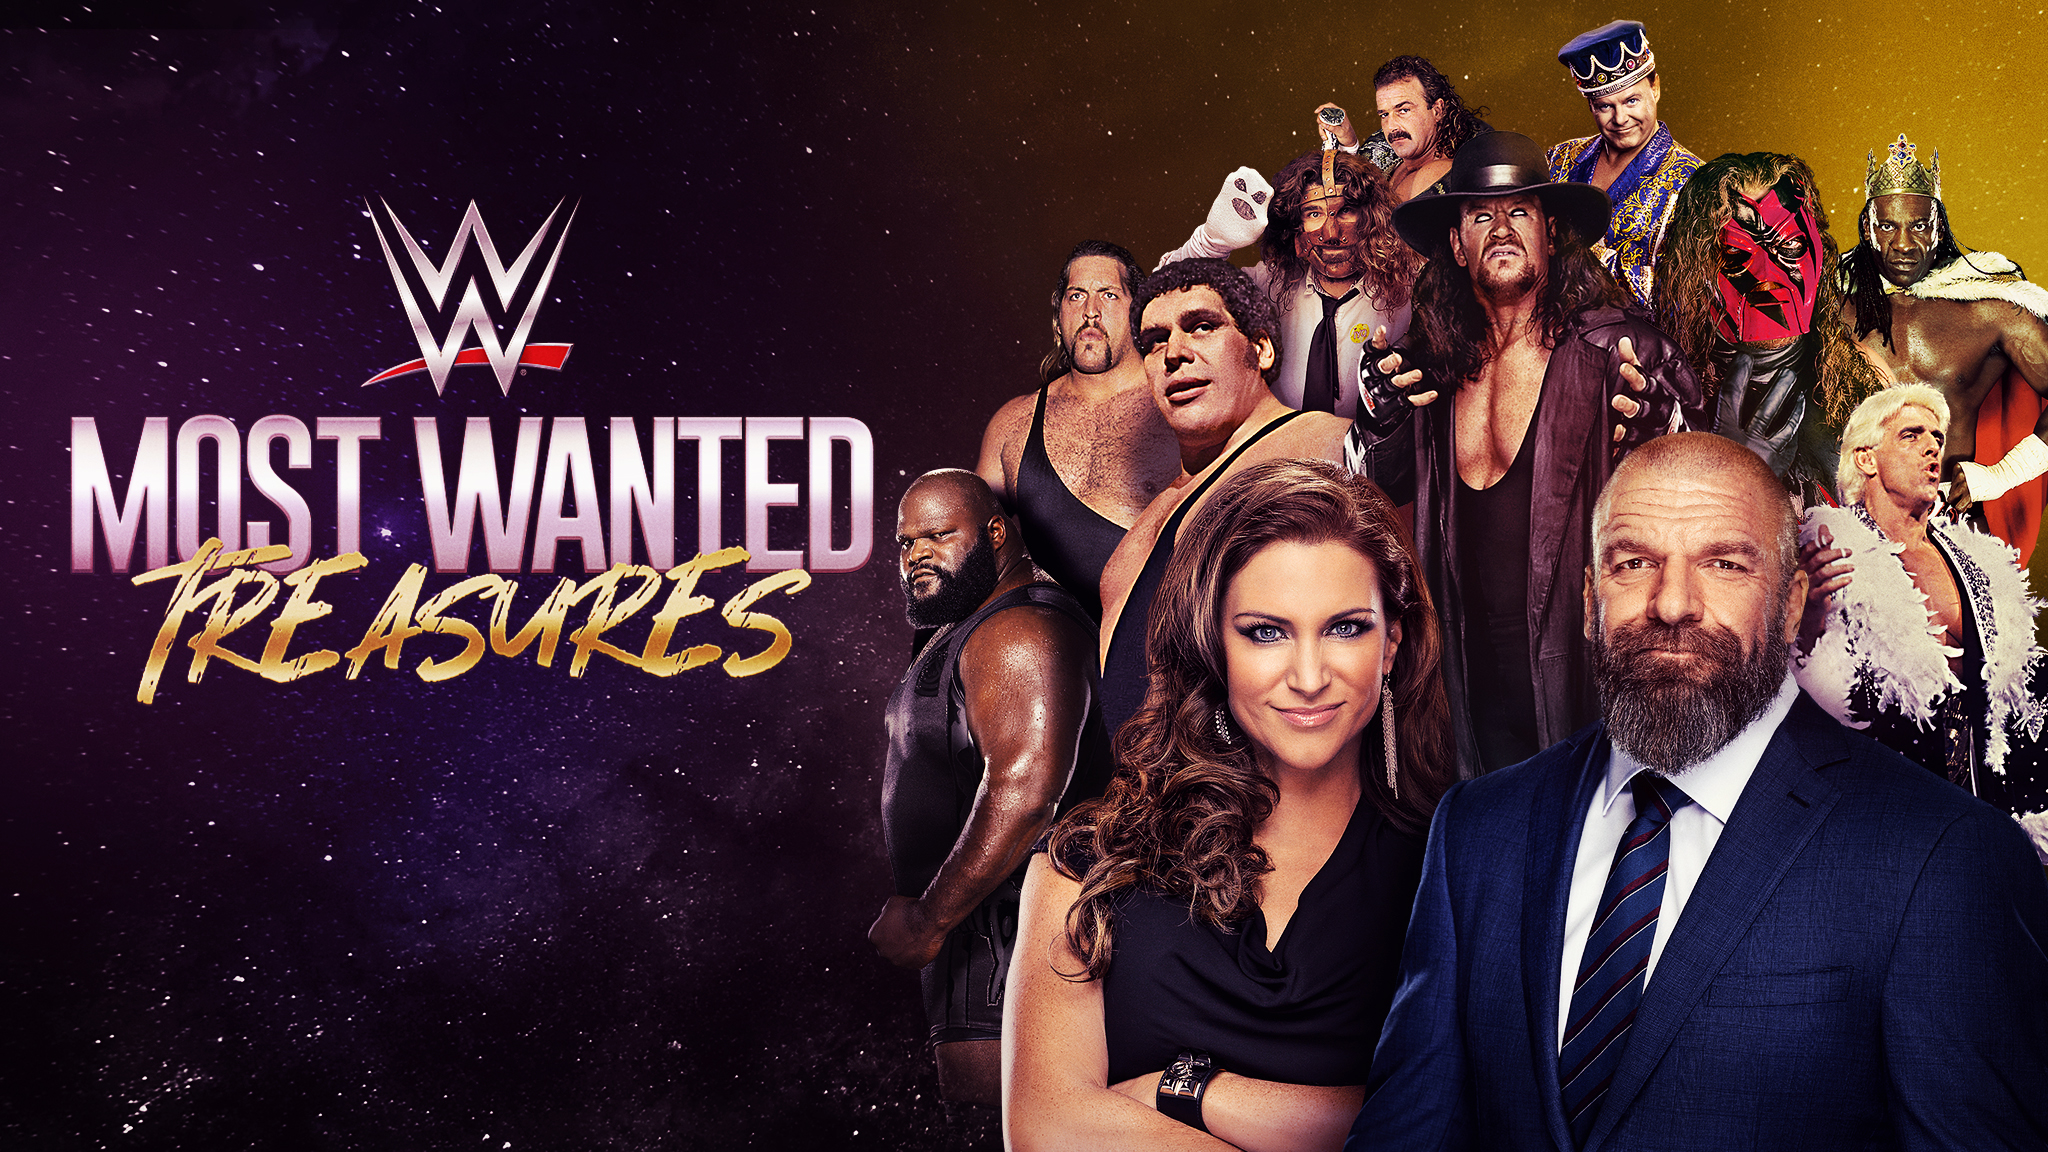 Watch WWE MOST WANTED TREASURES Ric Flair